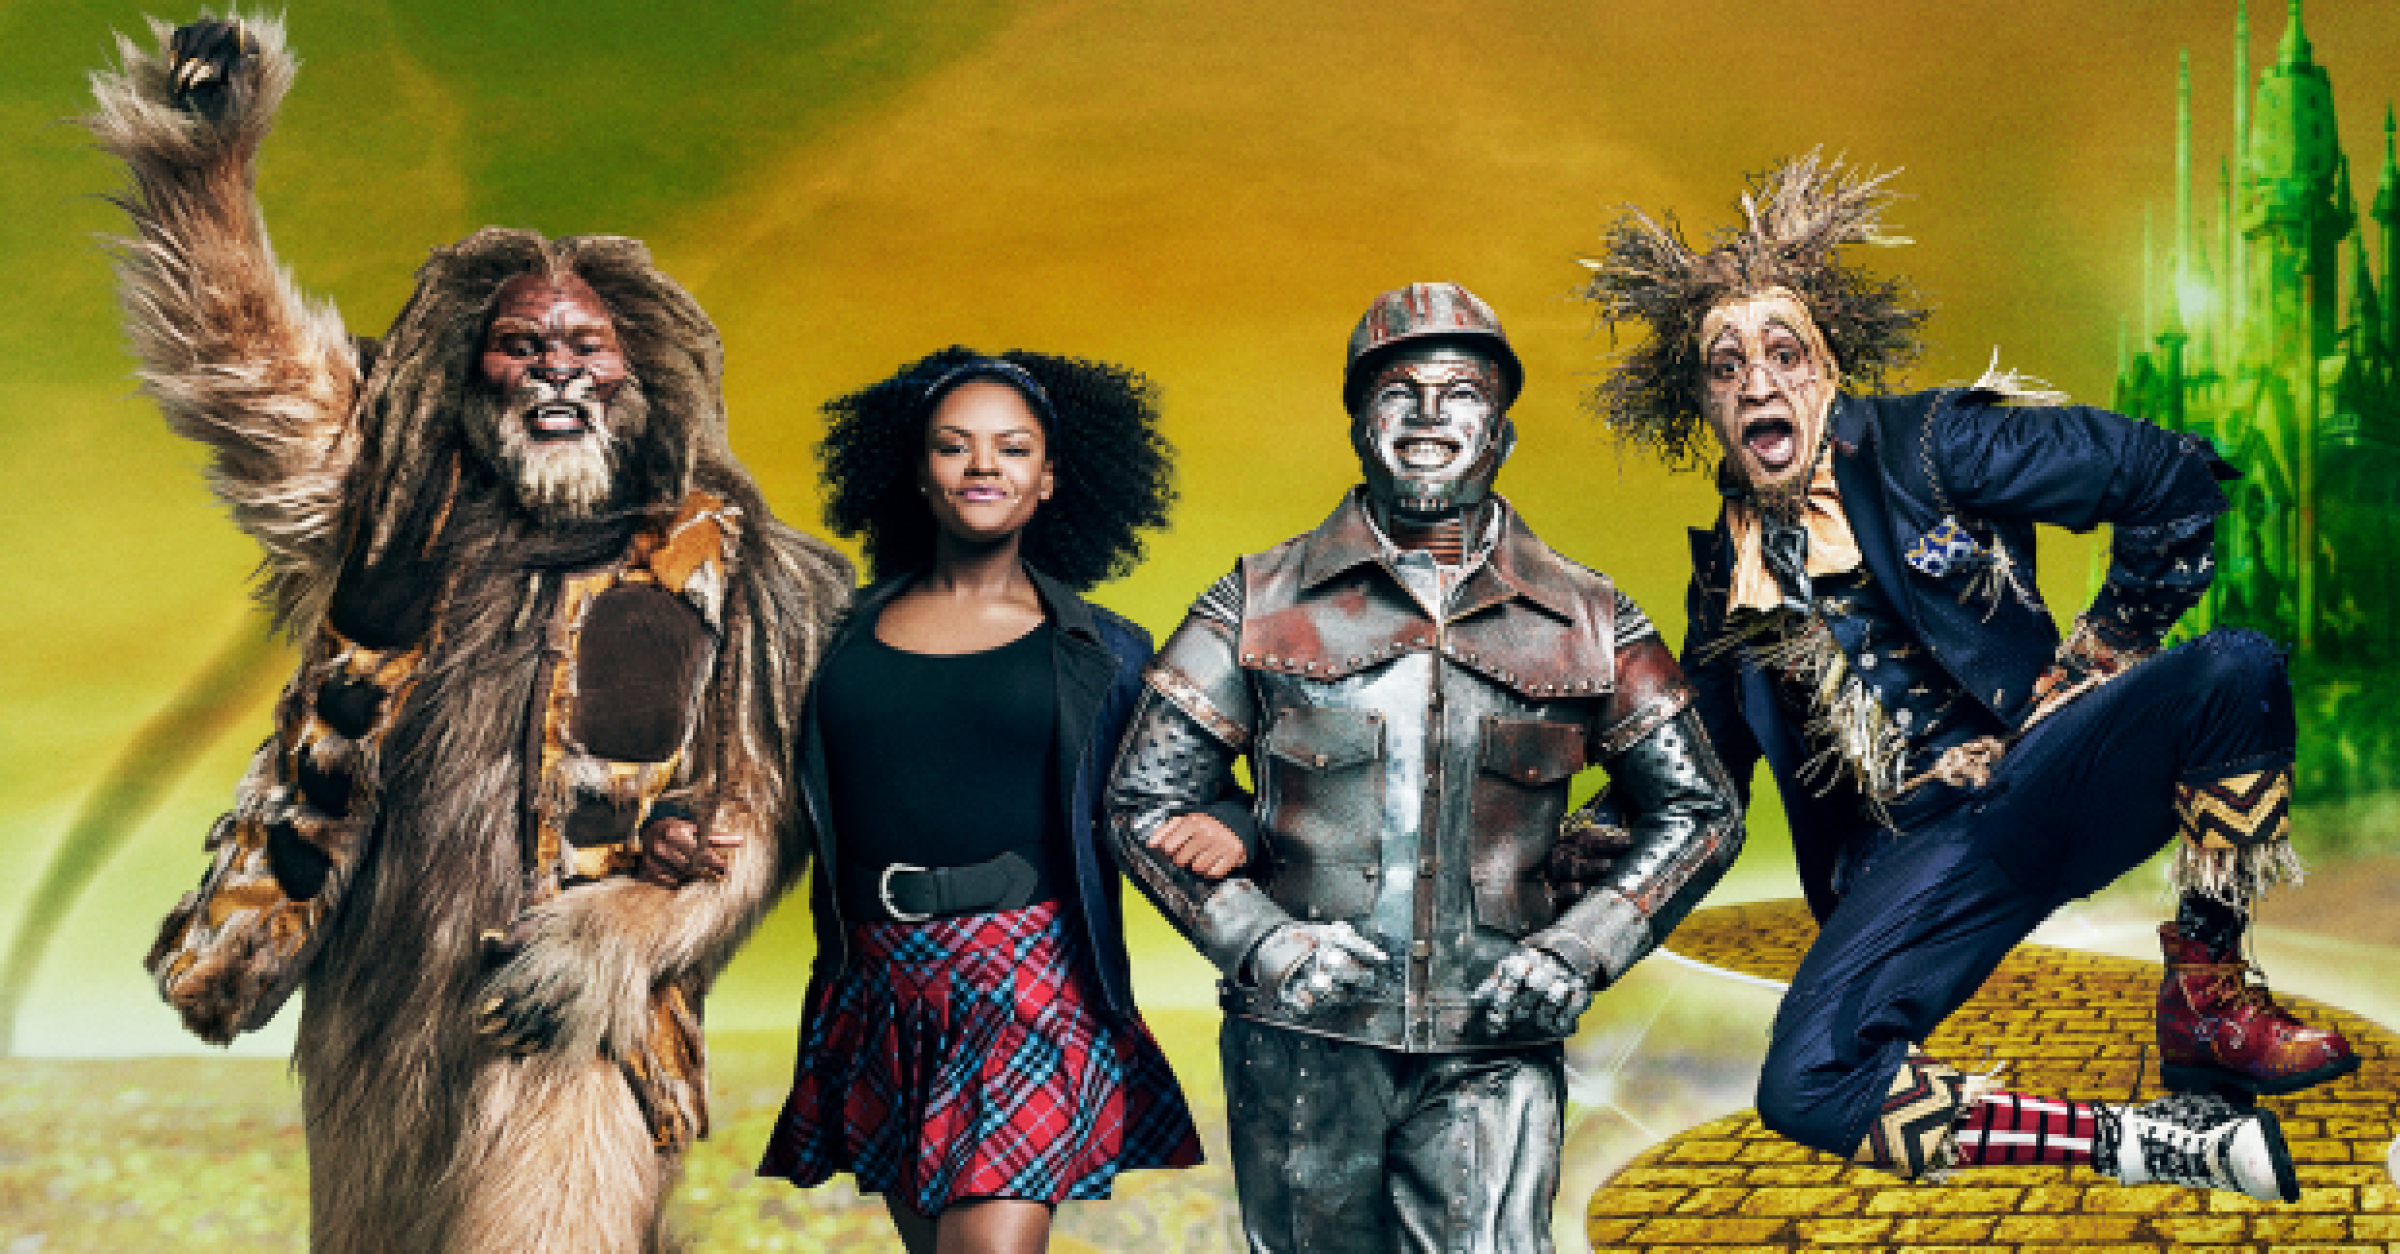 All-star The Wiz with Queen Latifah, Mary J Blige and Amber Riley ...